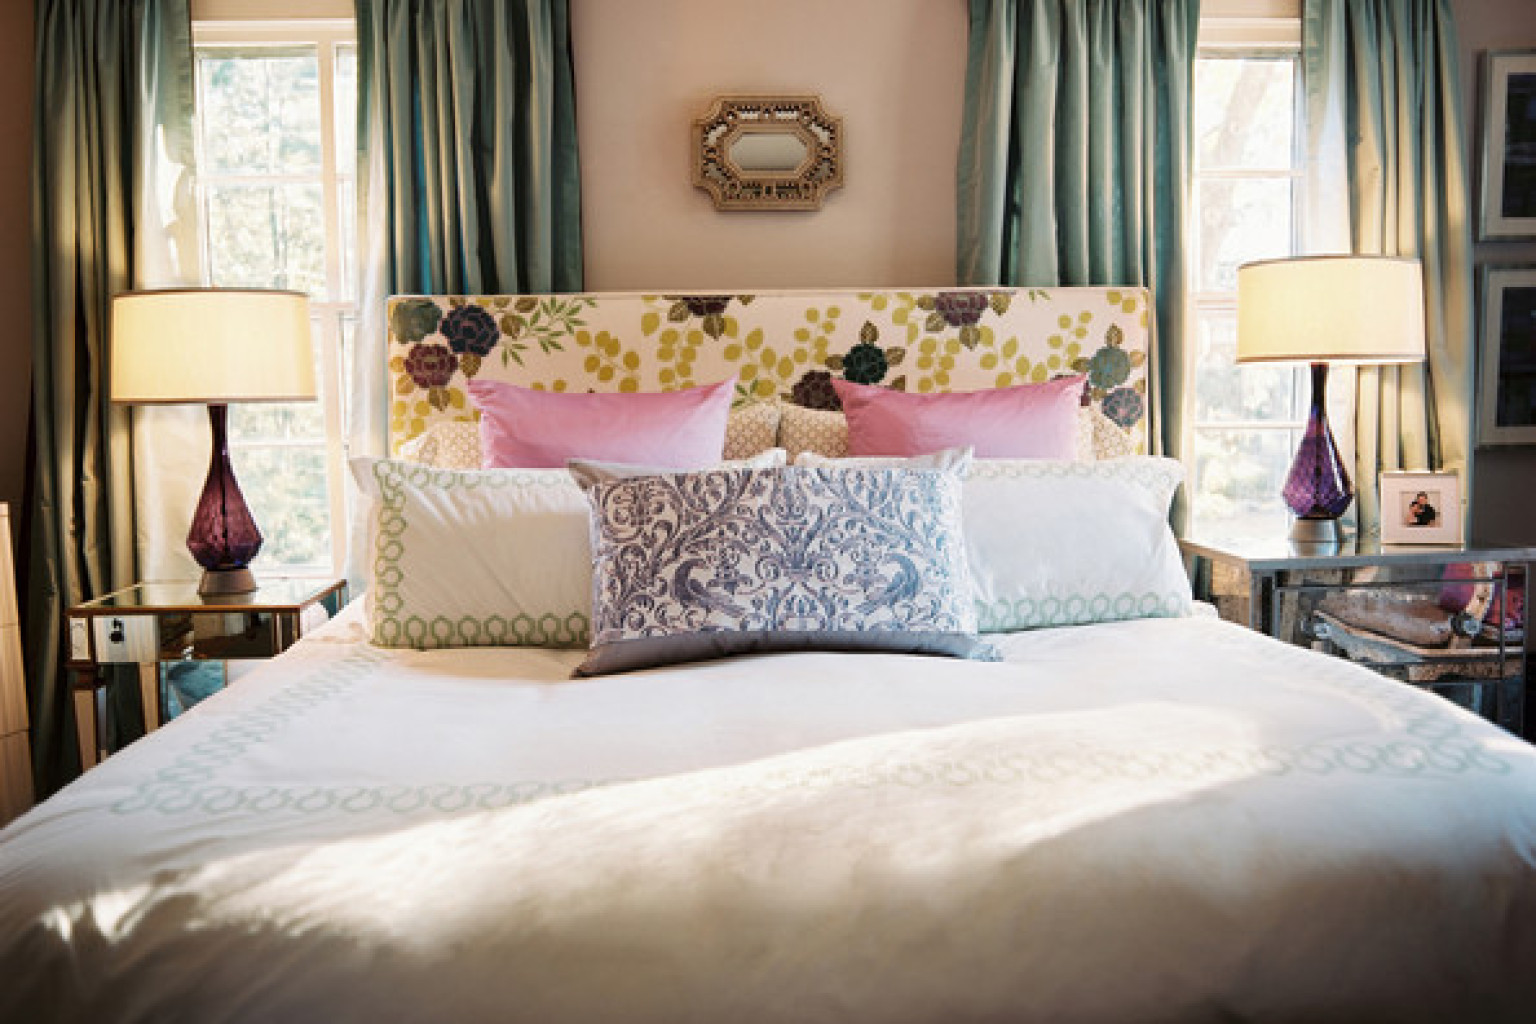 8 Romantic Bedroom Ideas From Lonny That Will Totally Get You In The Mood Photos Huffpost